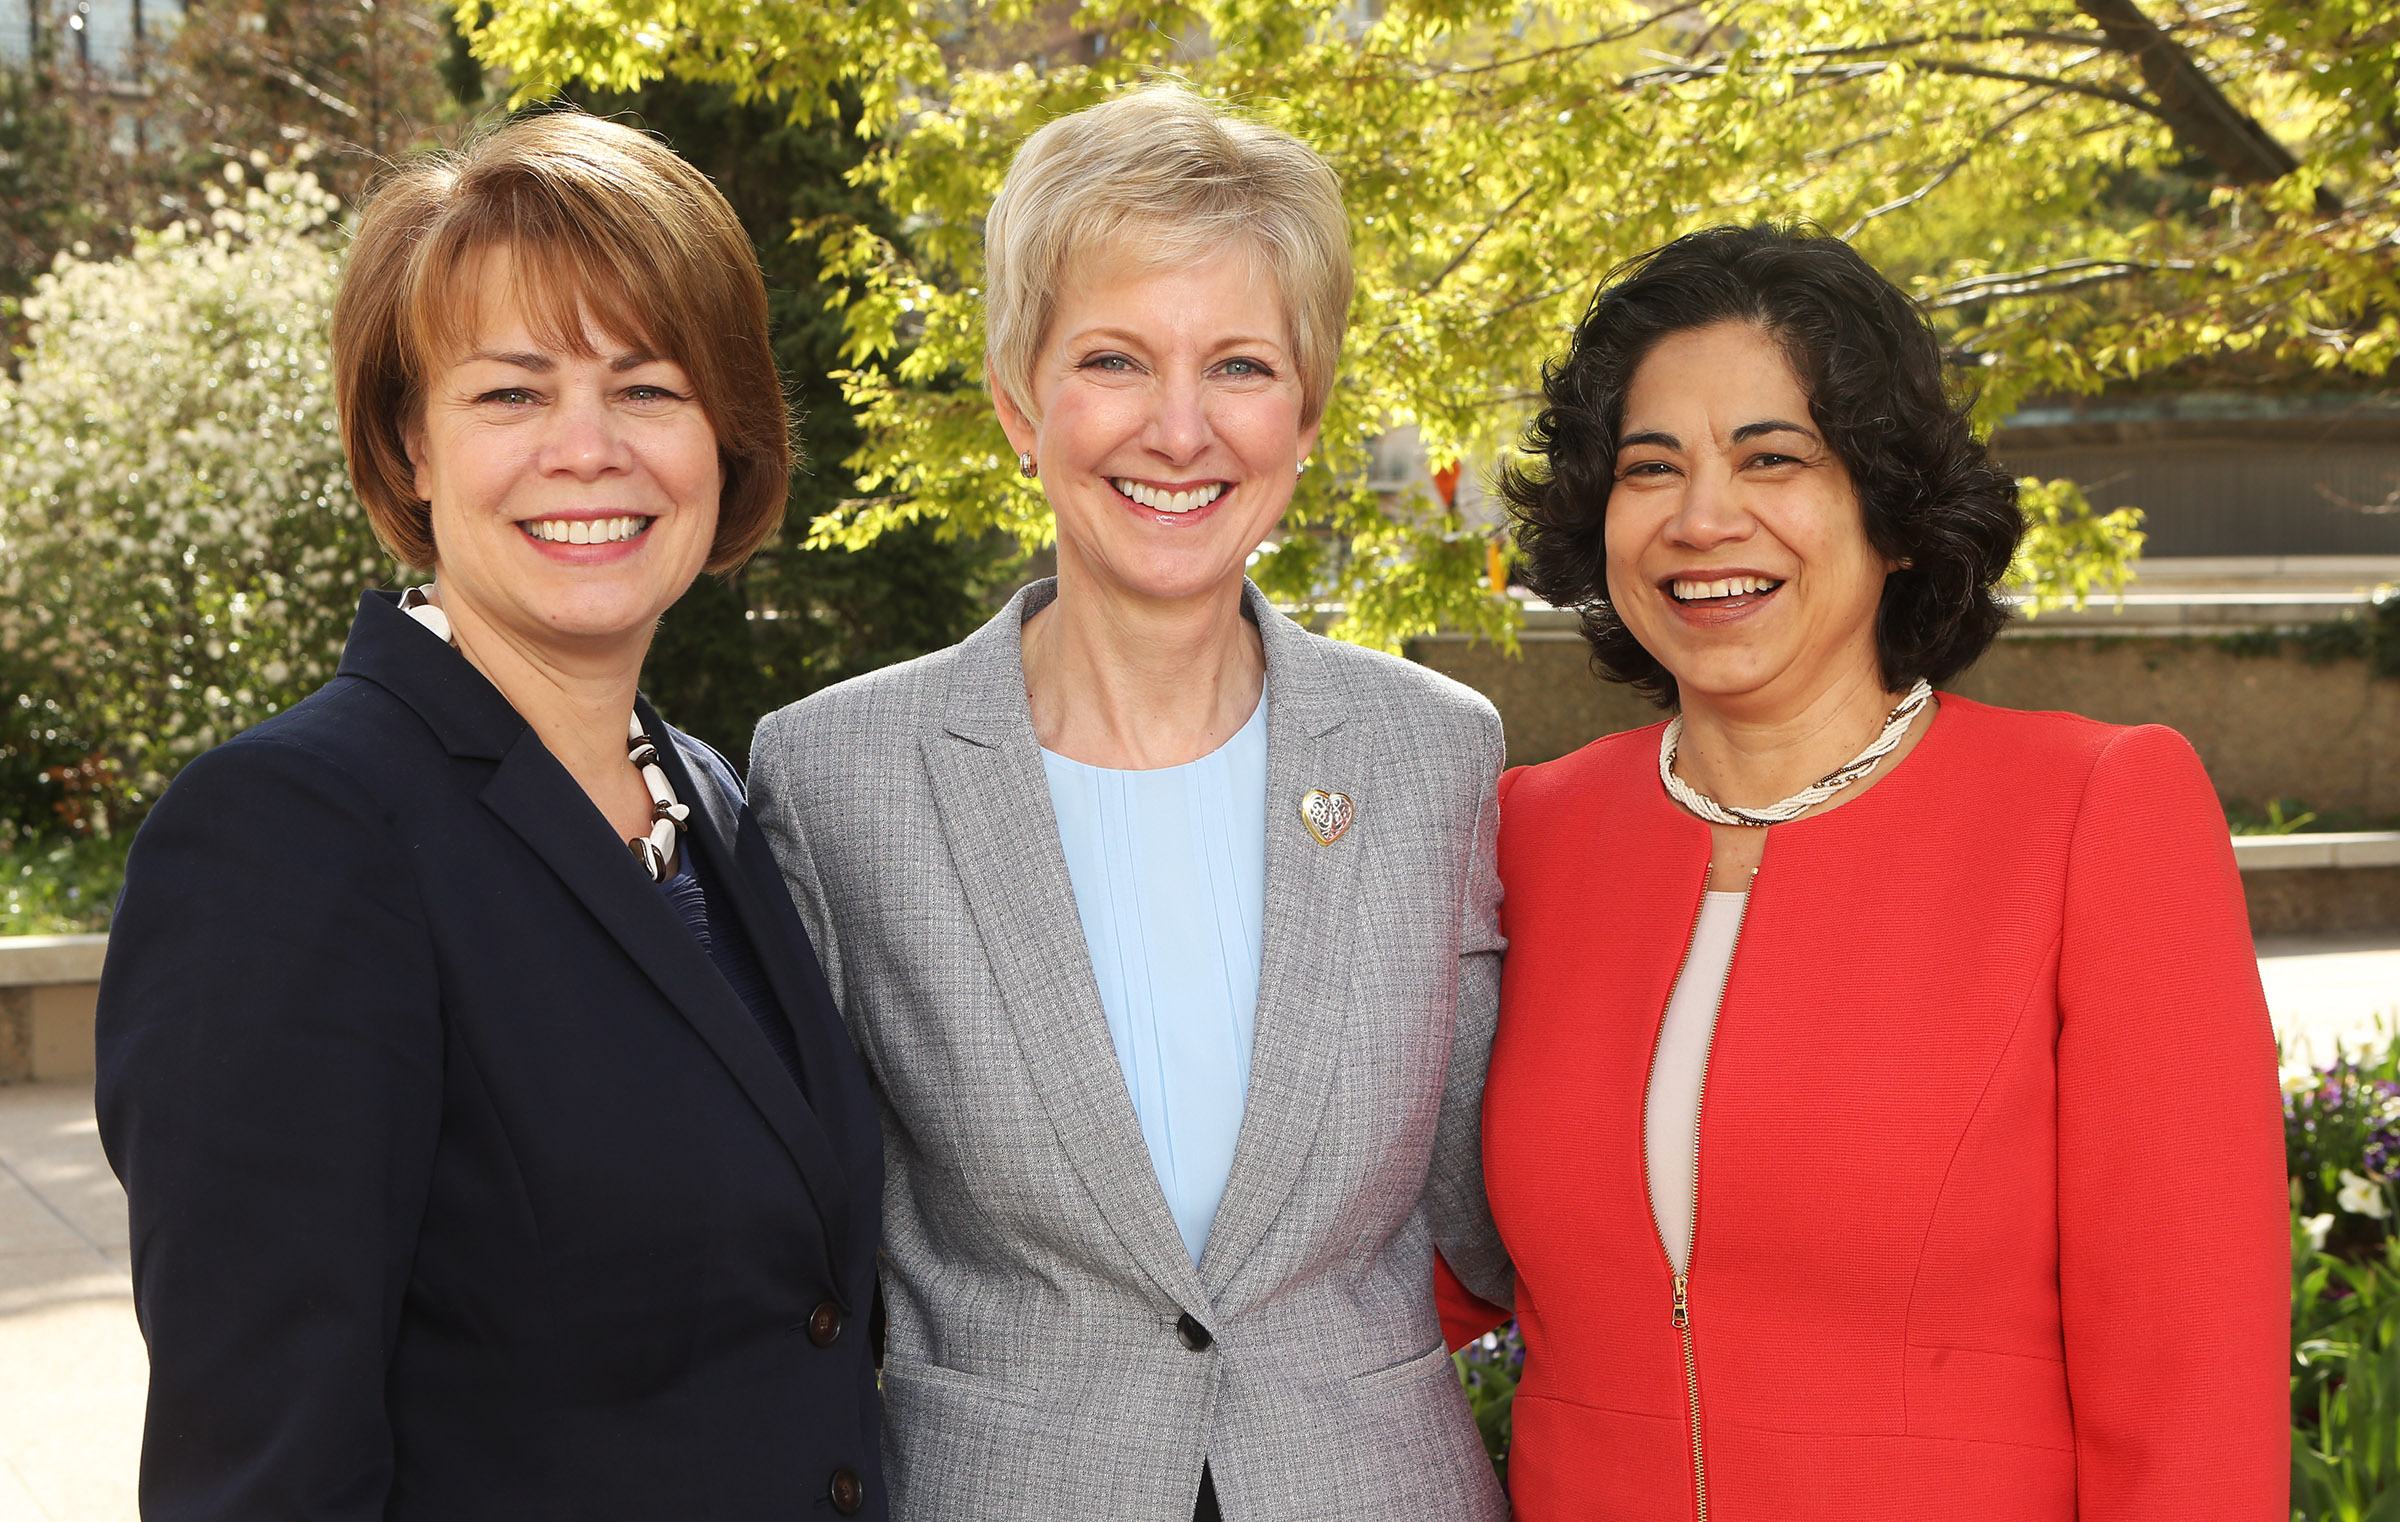 Sister Jean Barrus Bingham general president of the Relief Society, center, with her councilors Sister Sharon Eubank first counselor in the general presidency of the Relief Society, left, and Sister Reyna I. Aburto second counselor in the general presidency of the Relief Society, right, in Salt Lake City on Monday, April 3, 2017.